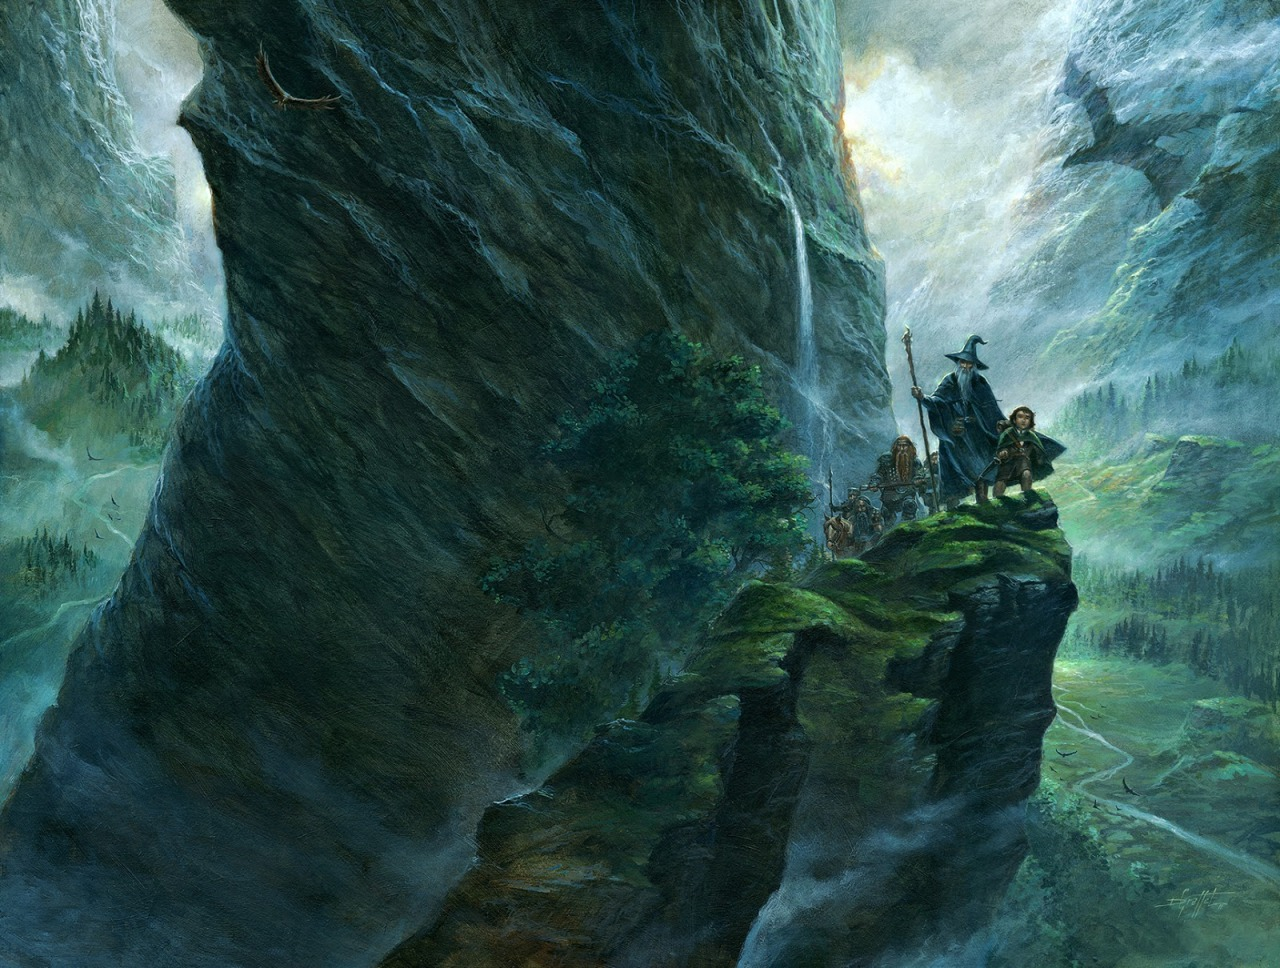 The Hobbit by Didier Graffet